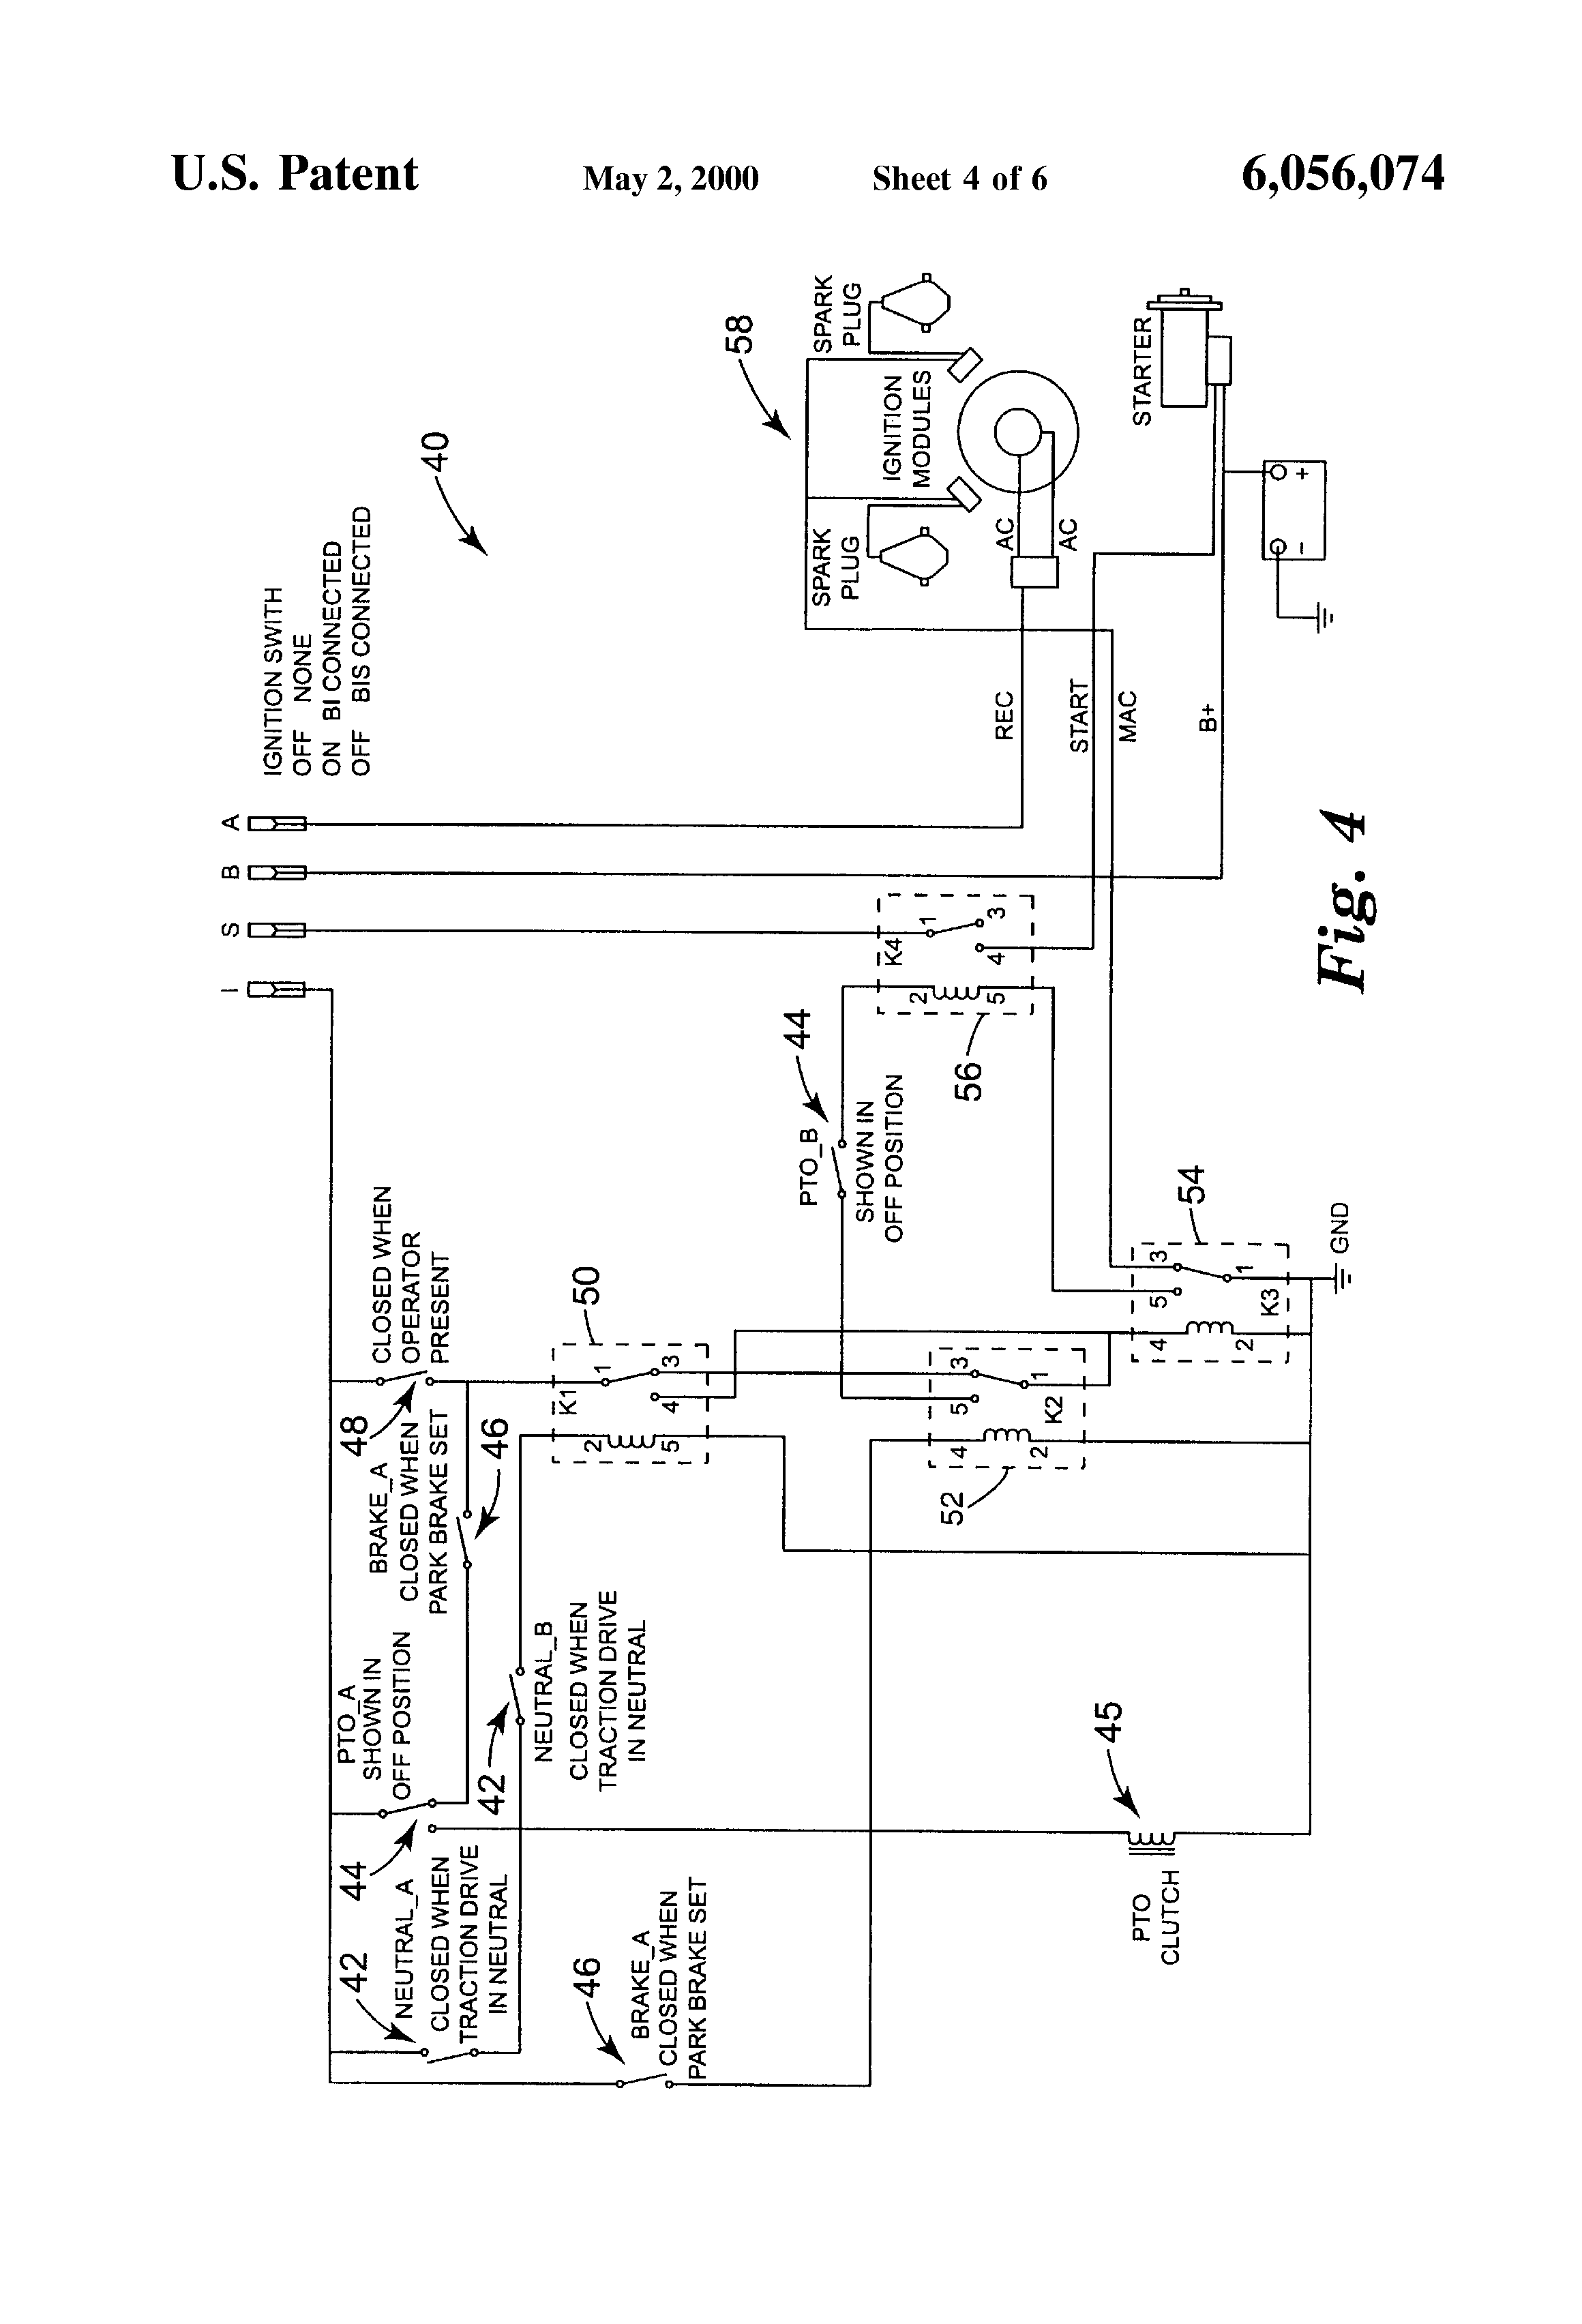 US6056074 moreover 20 Hp Kohler Engine Wiring Diagram as well Transmission Subframe furthermore 52 Mower Deck Pulleys Belt Idler Arm S N 2016893015 2017640725 5303181a besides Hydro Gear Hydrostatic Pump Left Side. on gravely wiring diagrams